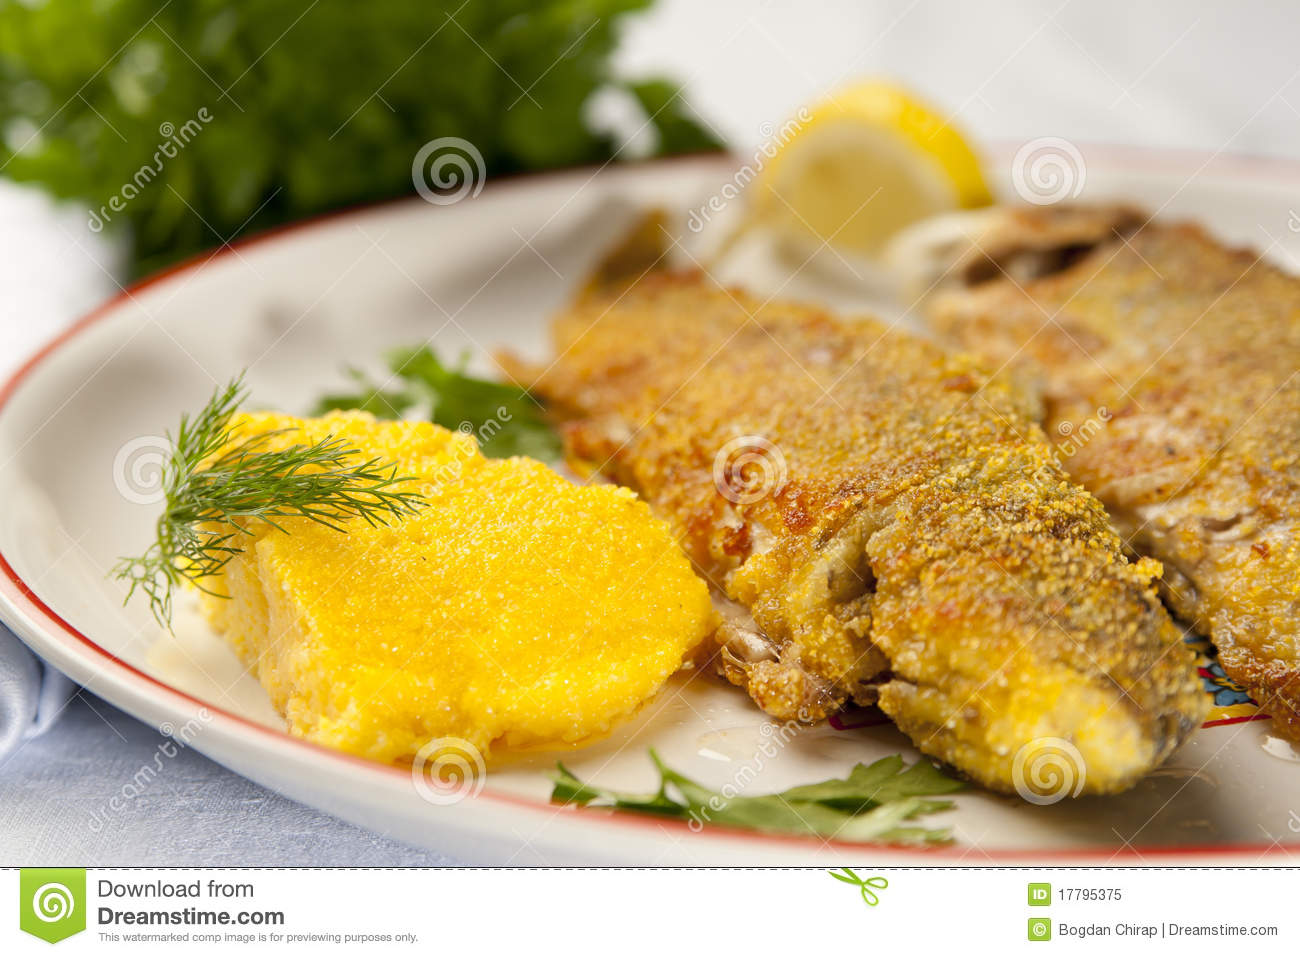 Baked rainbow trout with polenta